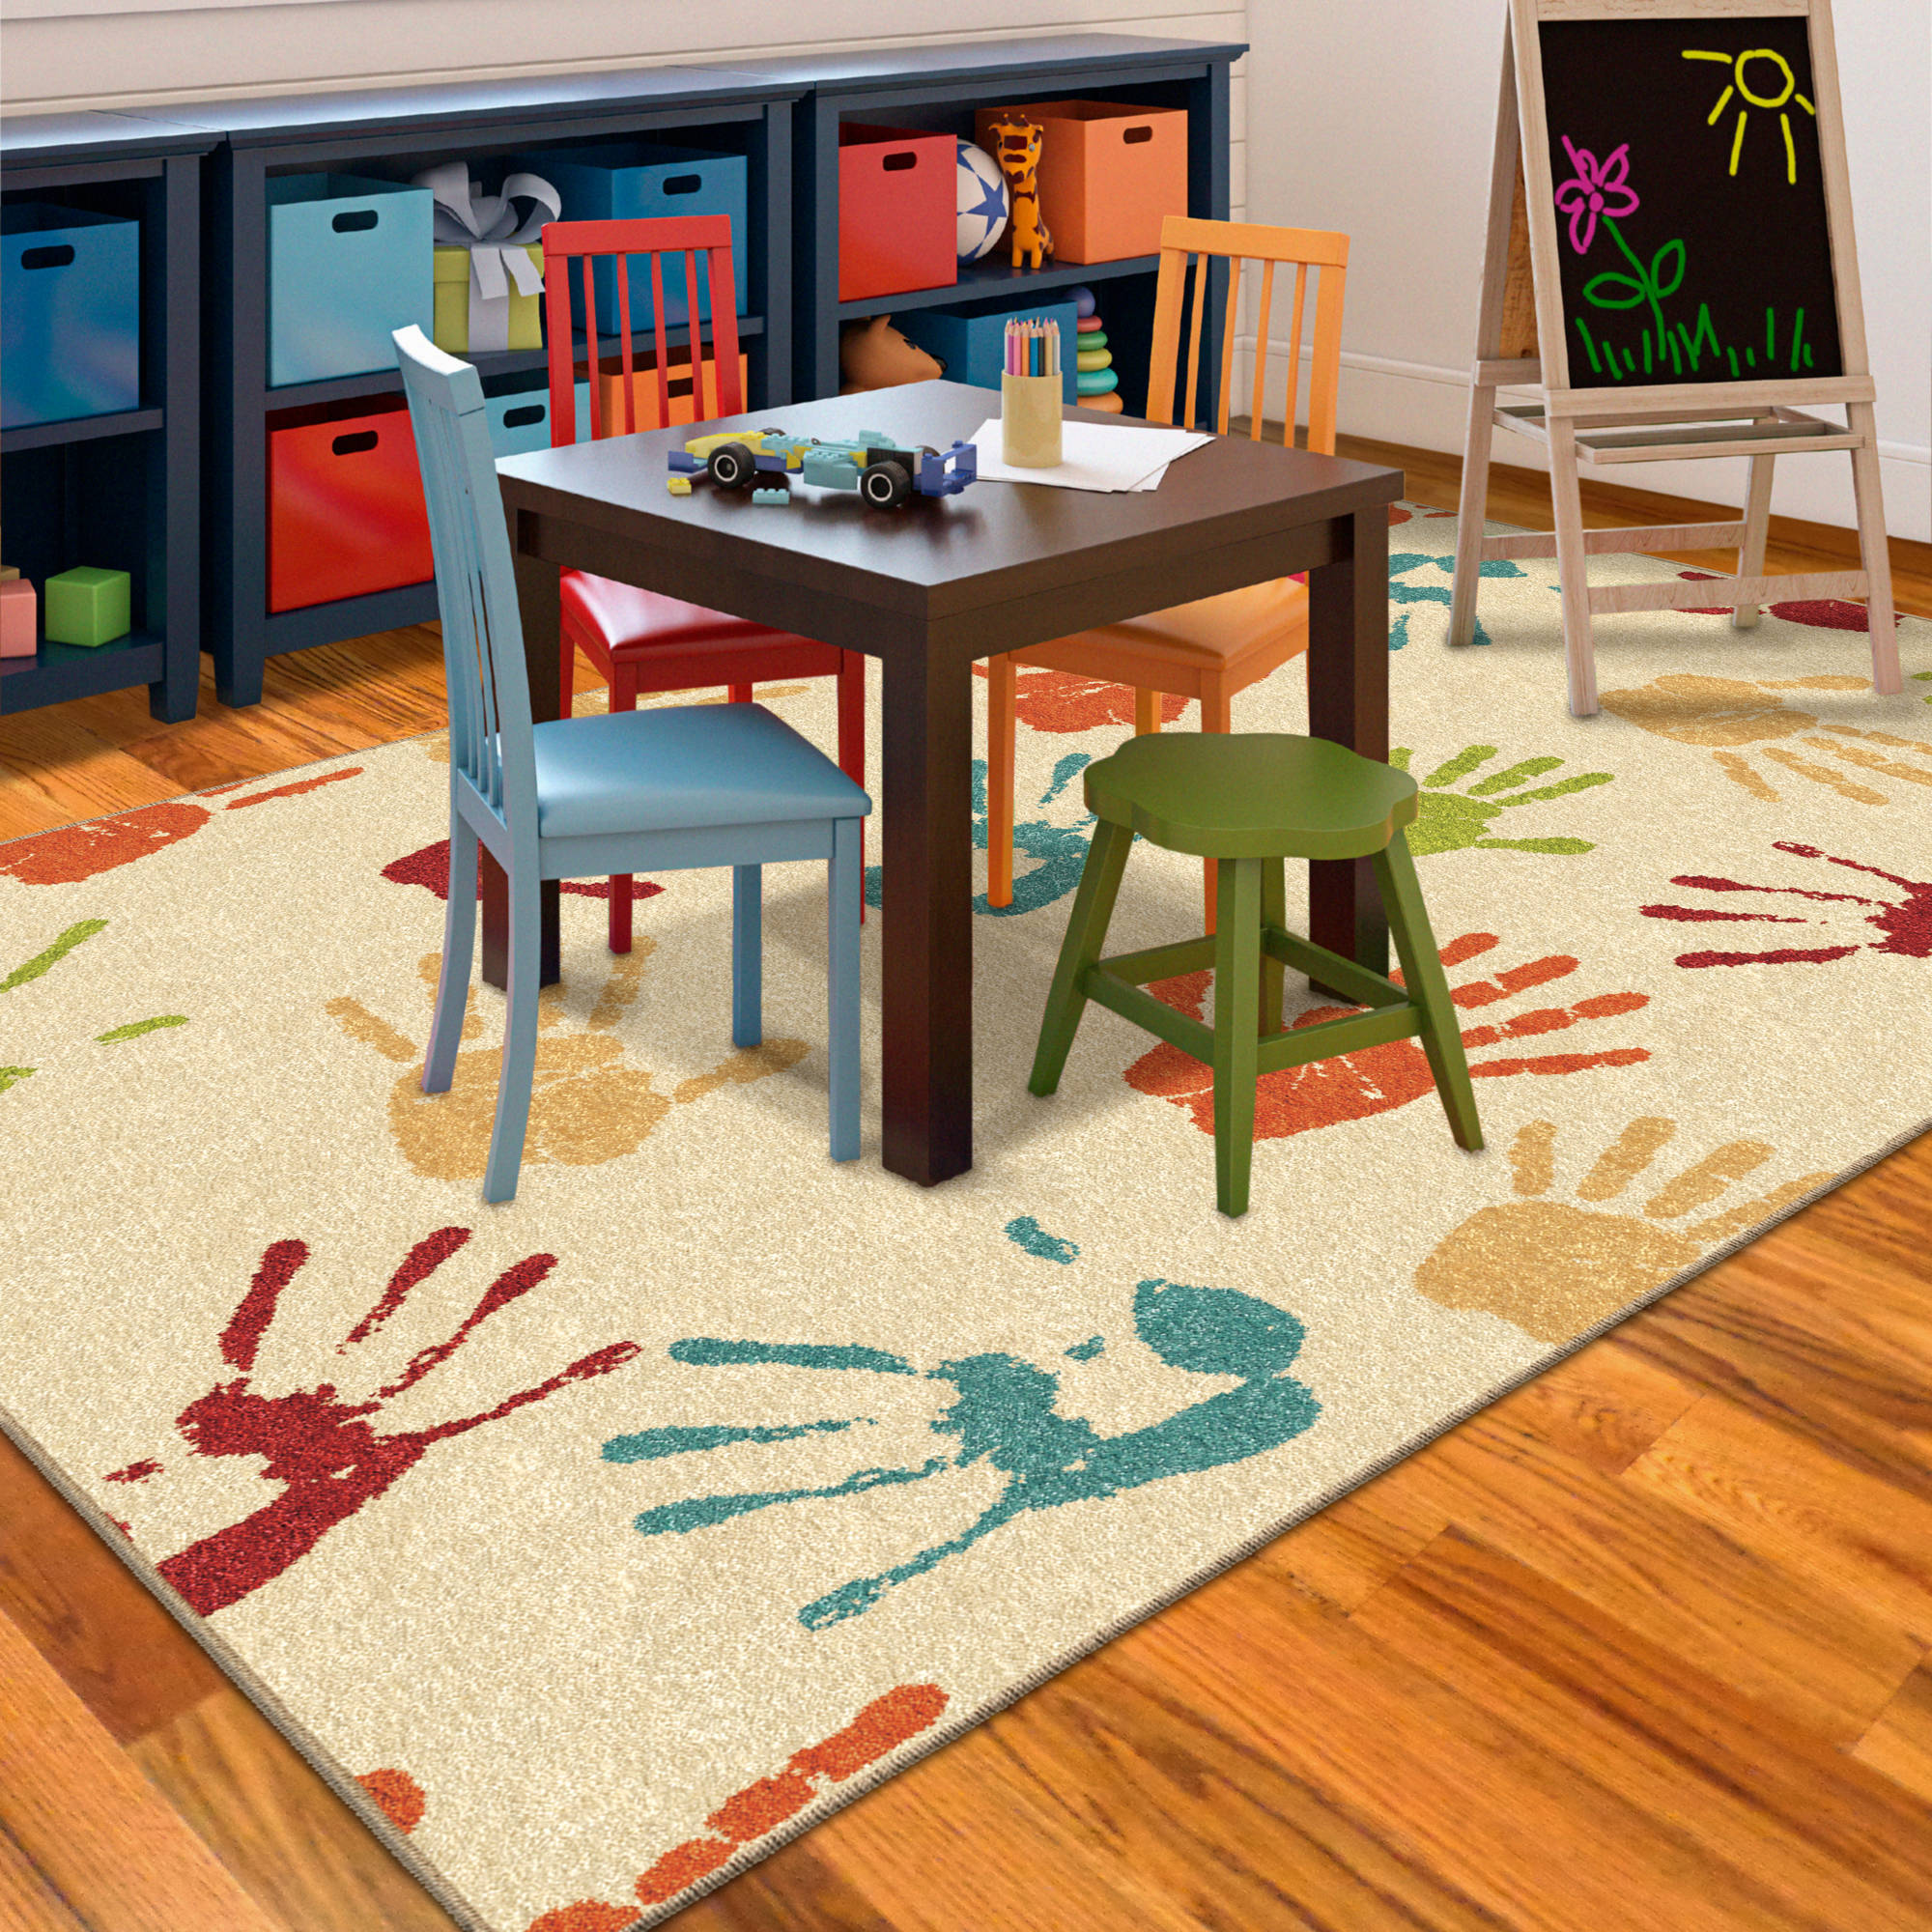 Colorful Kids Rooms: Kids Hand Prints Area Rug Colorful Fun Kid's Bedroom